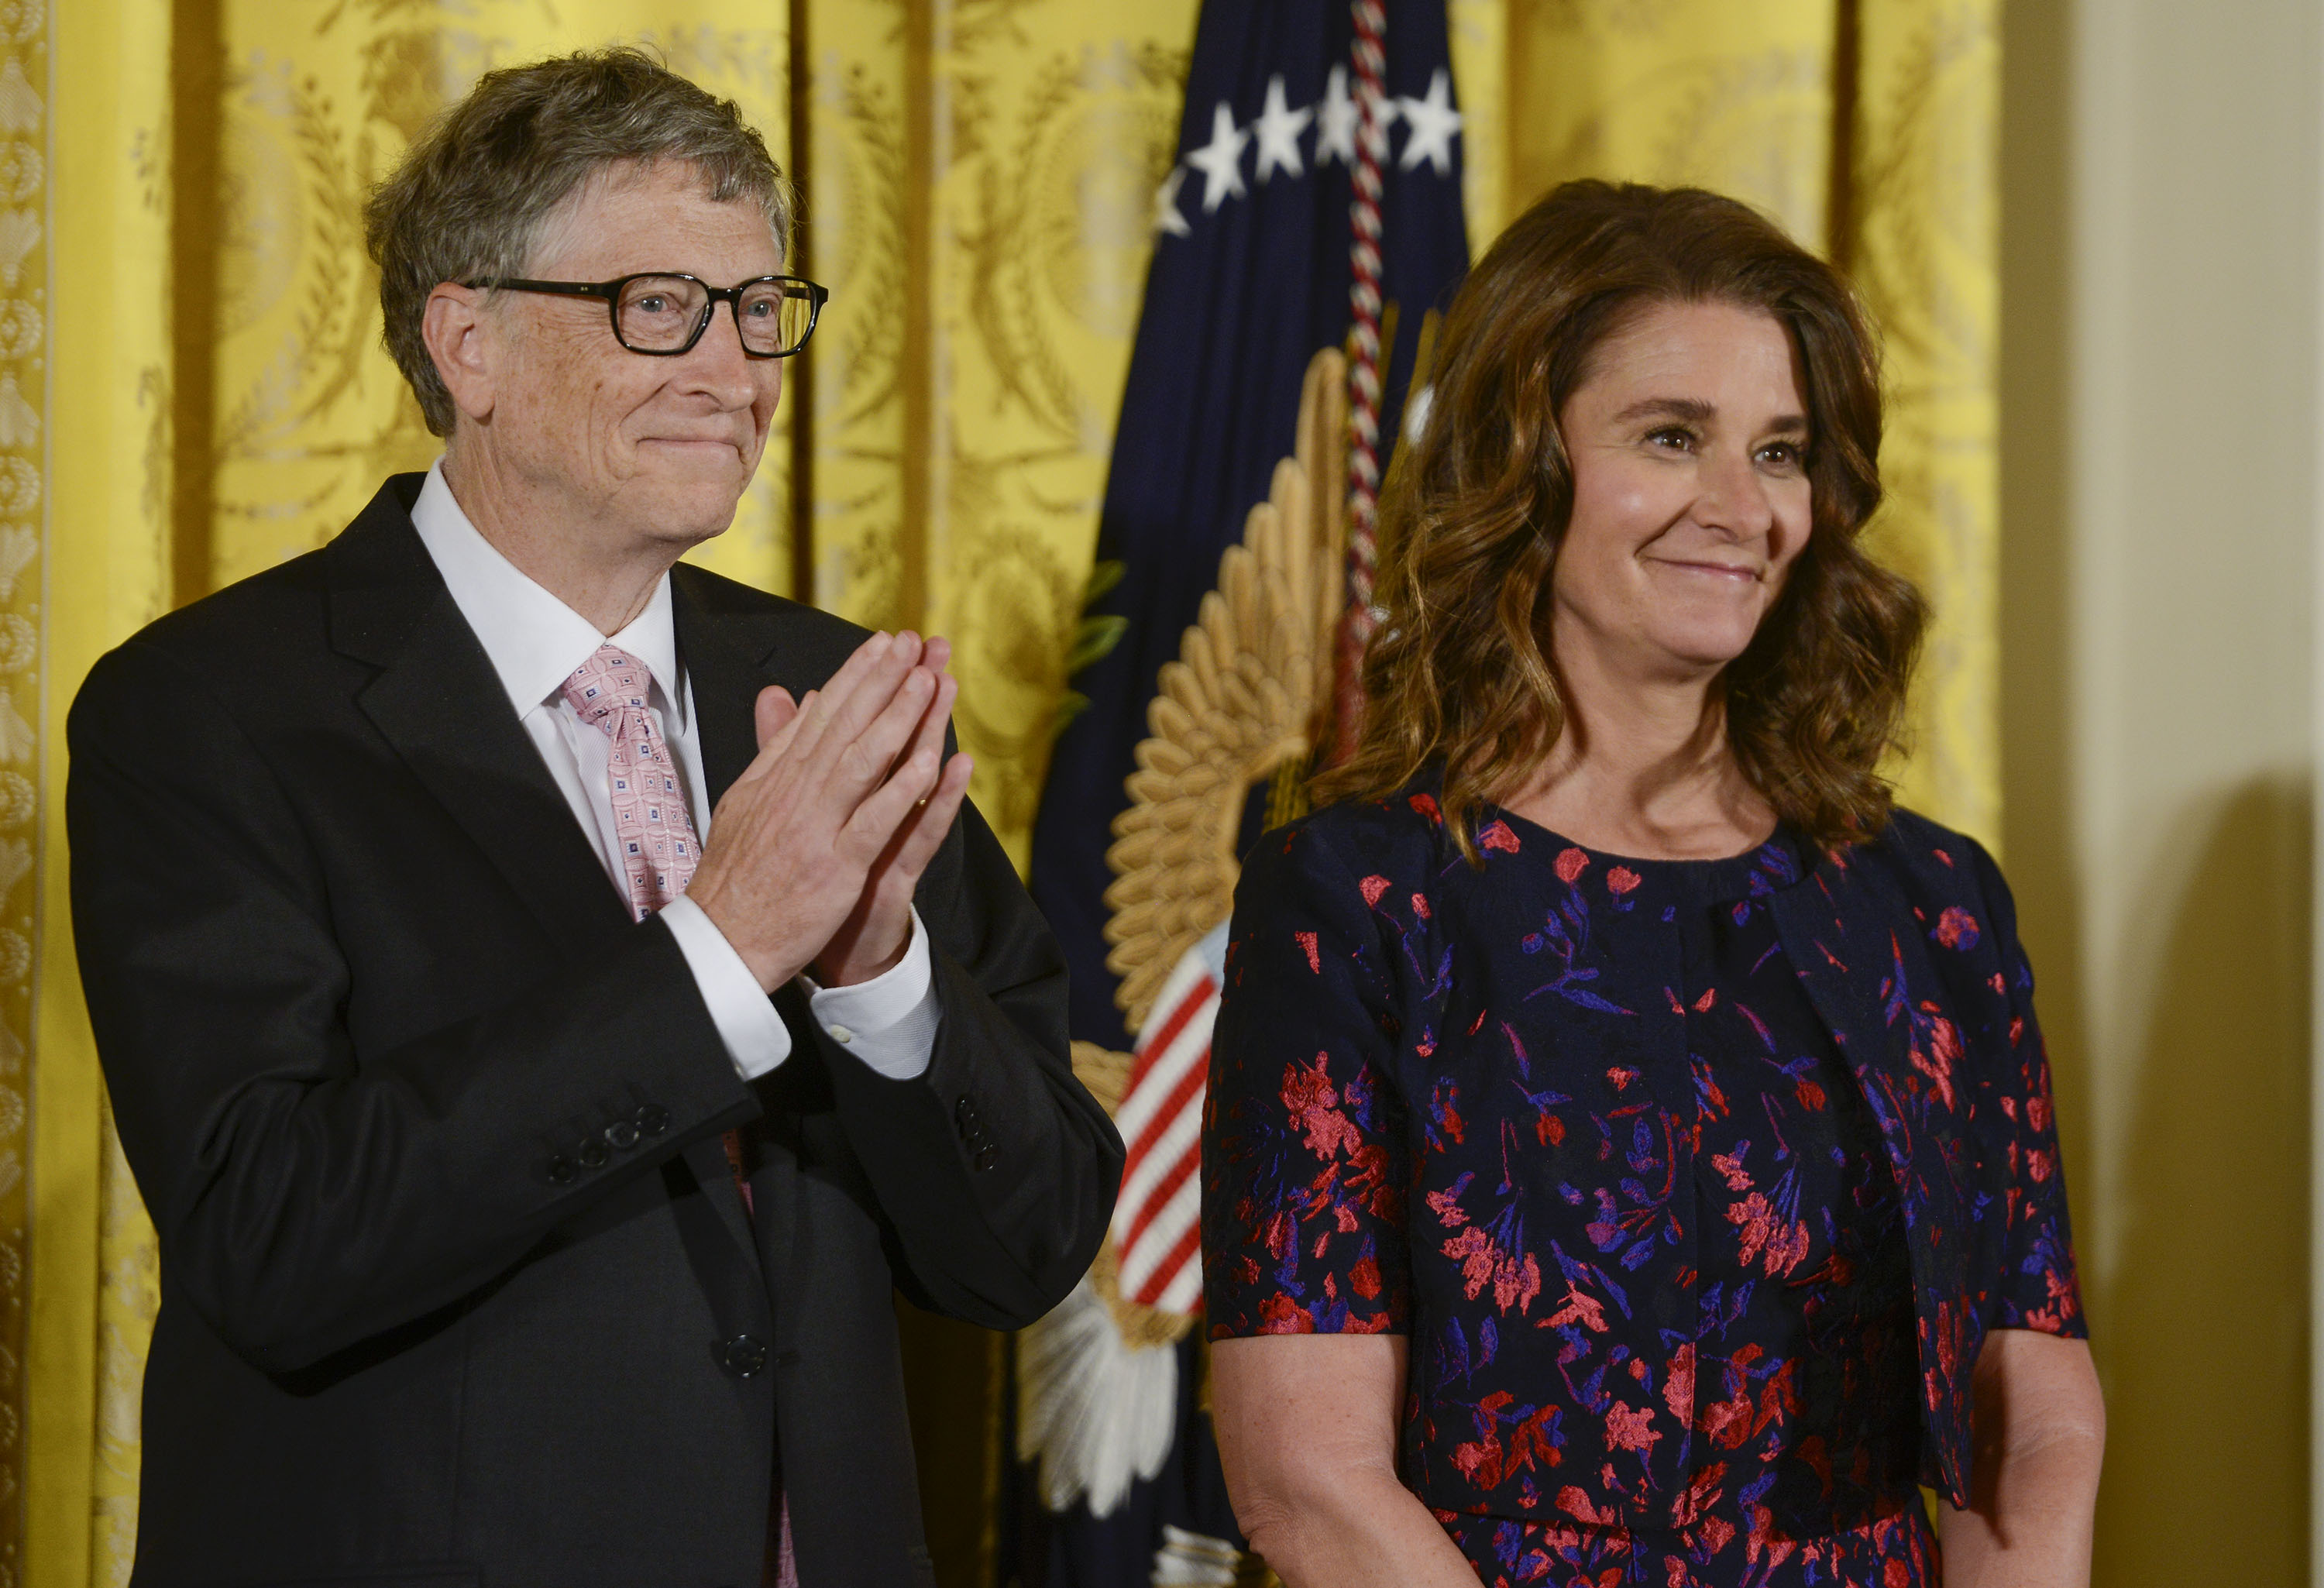 Bill and Melinda Gates are presented with the 2016 Presidential Medal Of Freedom by President Obama at White House on Nov. 22, 2016 in Washington, D.C.